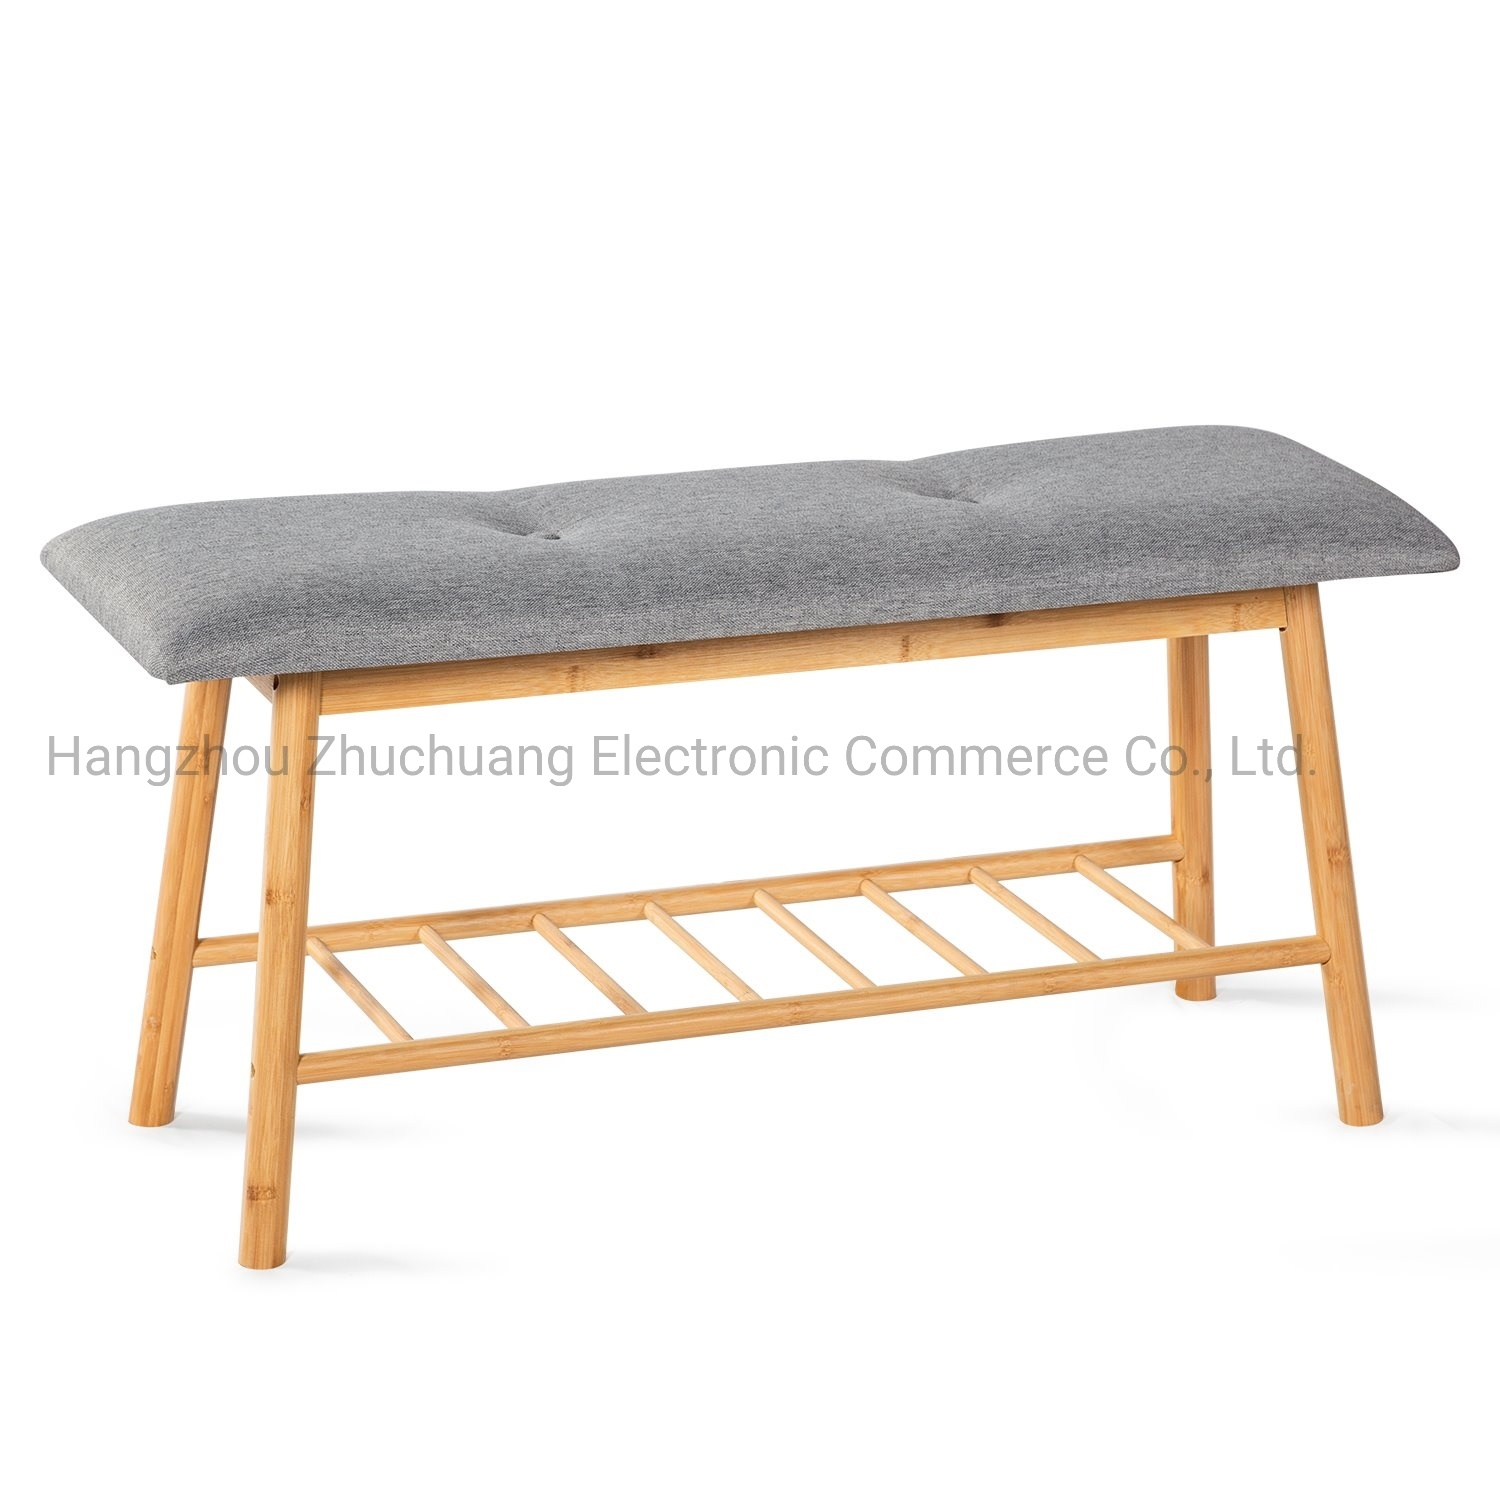 Picture of: China Extra Large Size Bamboo Entryway Shoe Rack Storage Bench With Soft Cushion China Shoe Rack Bench Bamboo Shoe Bench